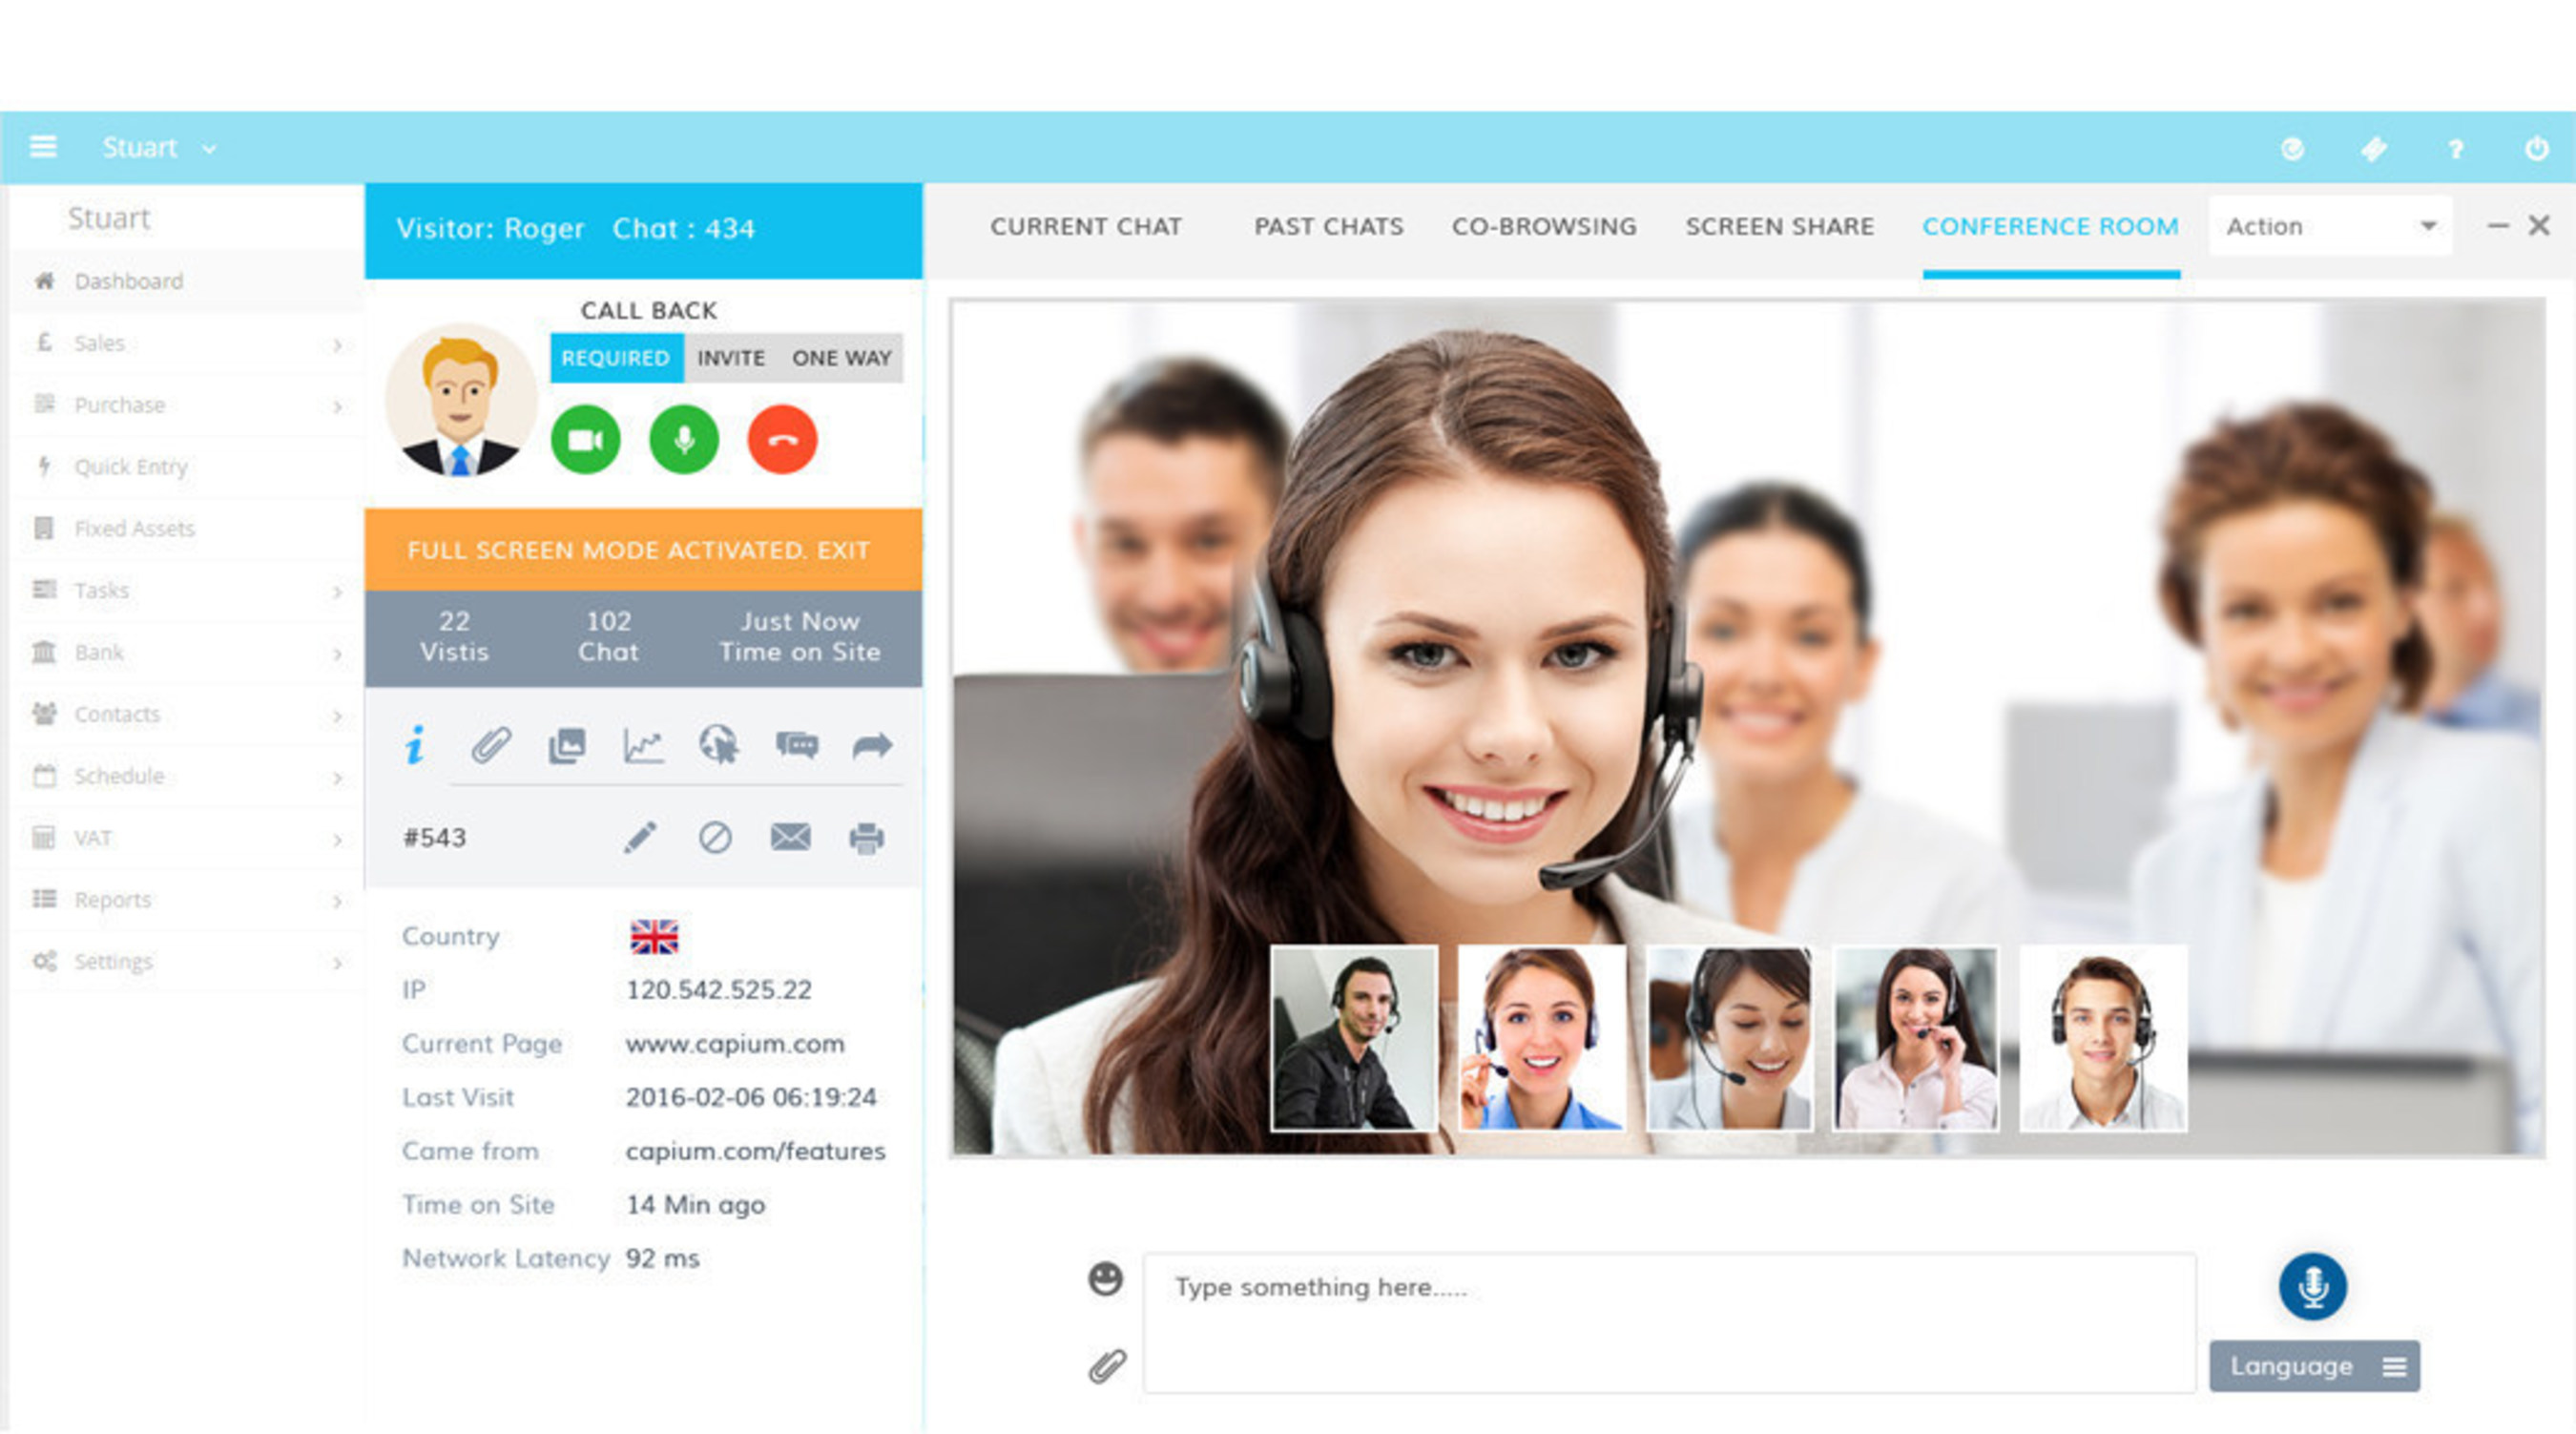 Innovative Video Conferencing Now in a Way You Never Knew Existed